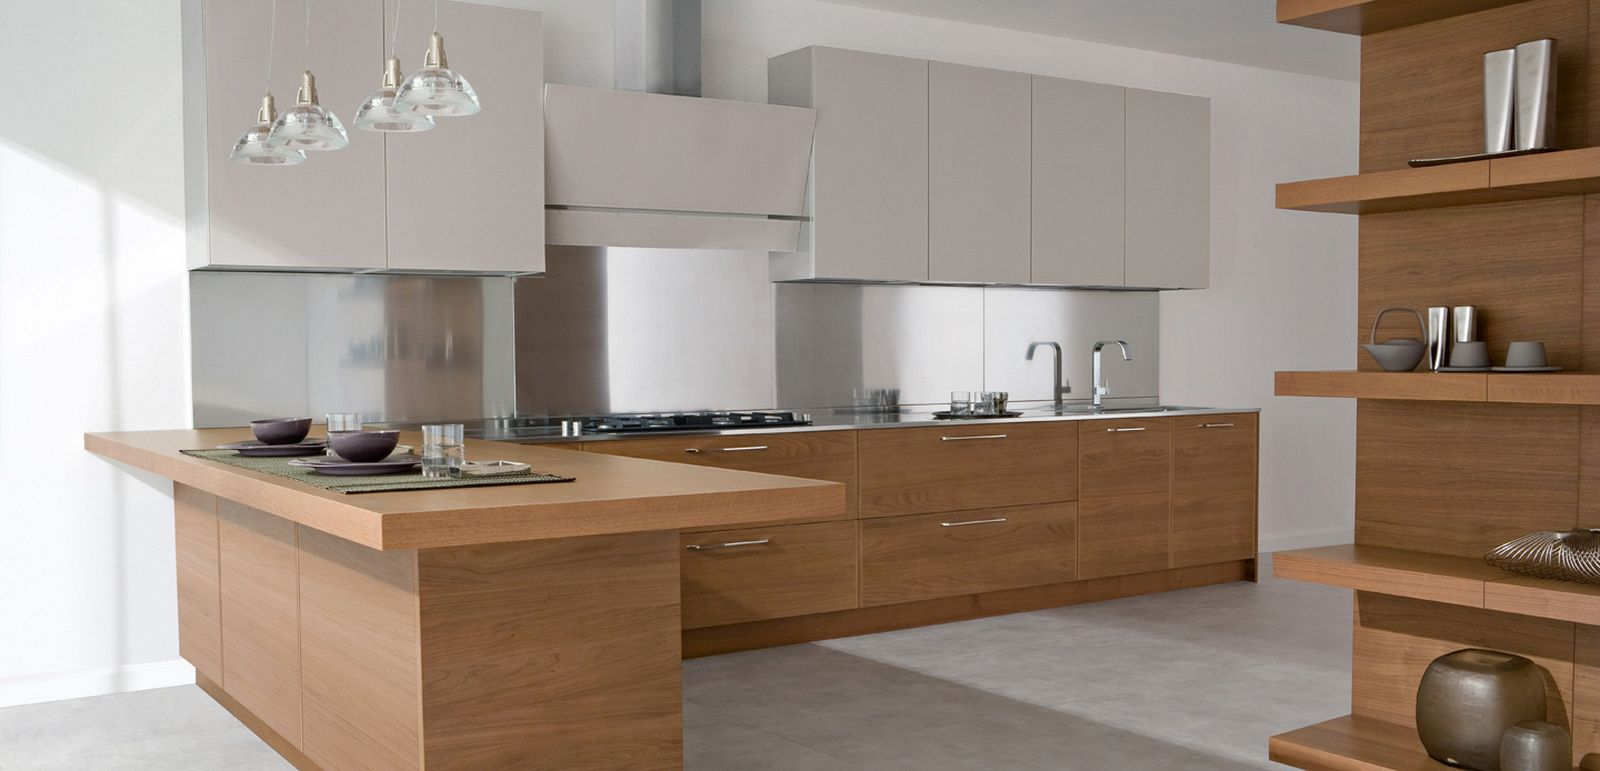 Modern kitchens in wooden finish allarchitecturedesigns for Contemporary style kitchen cabinets